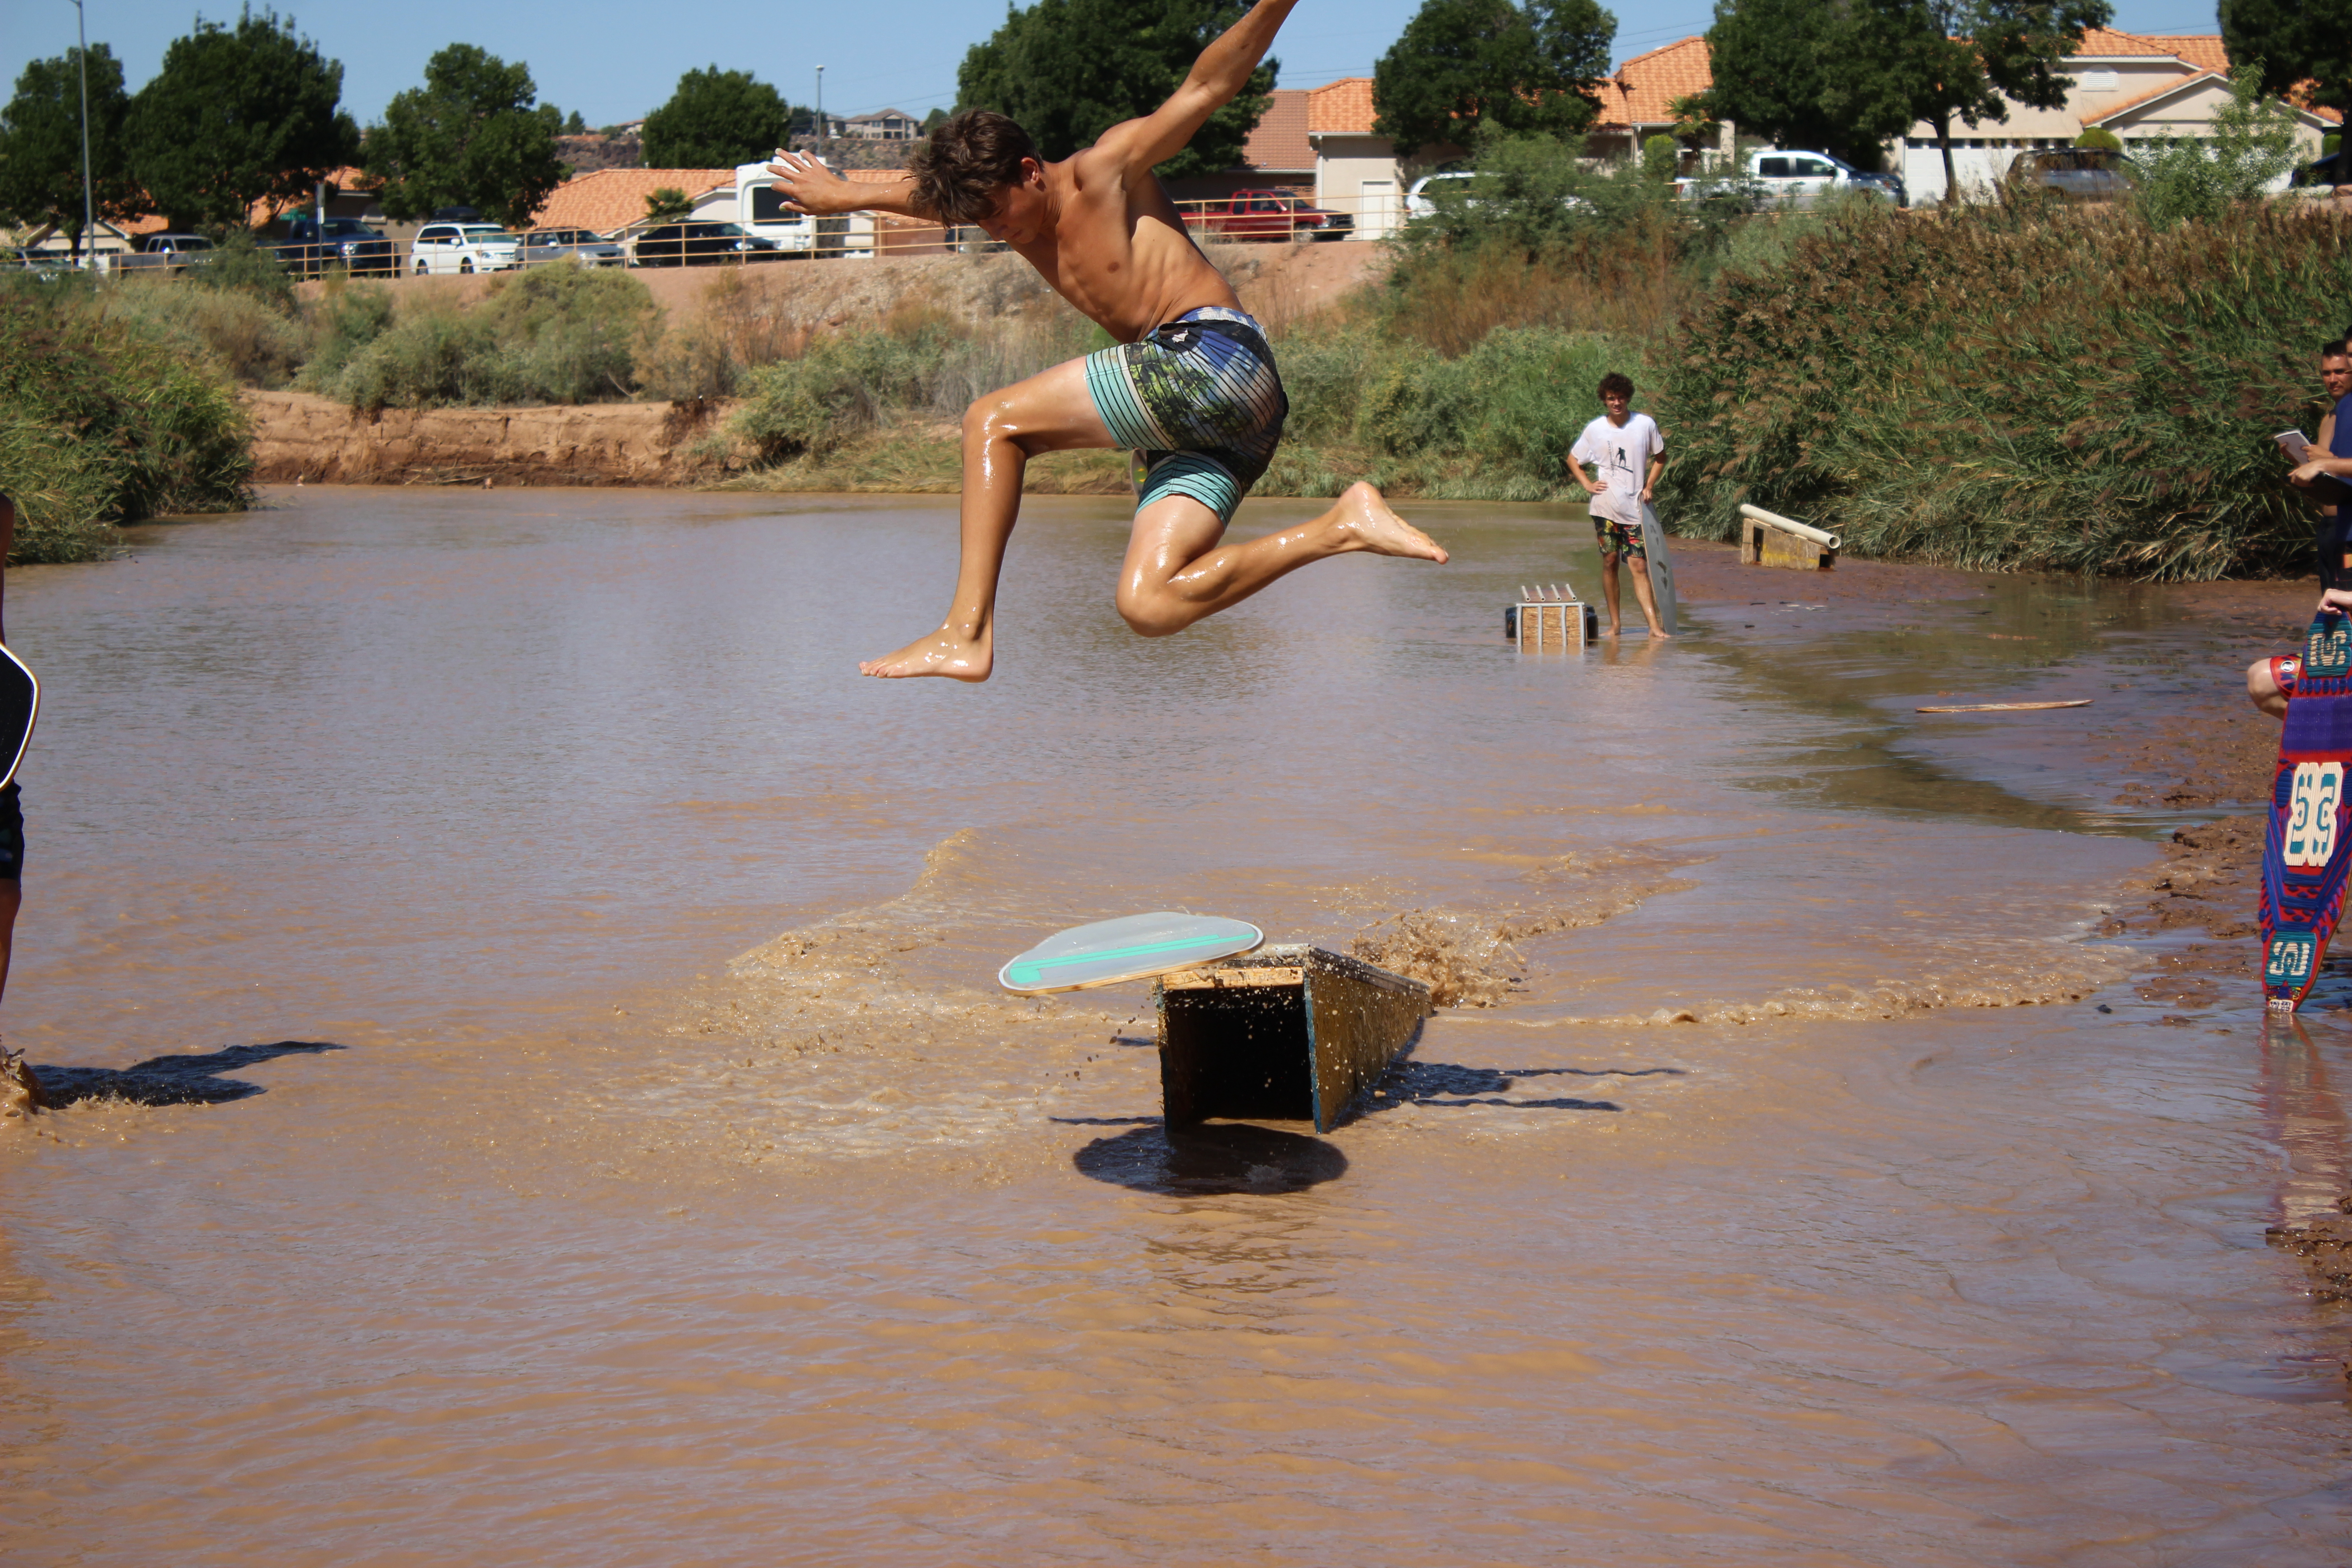 During the 1st Annual Skimapalooza skimboarding competition, a competitor gets some serious air while attempting a trick, St. George, Utah, Aug. 13, 2016 | Photo by Don Gilman, St. George News